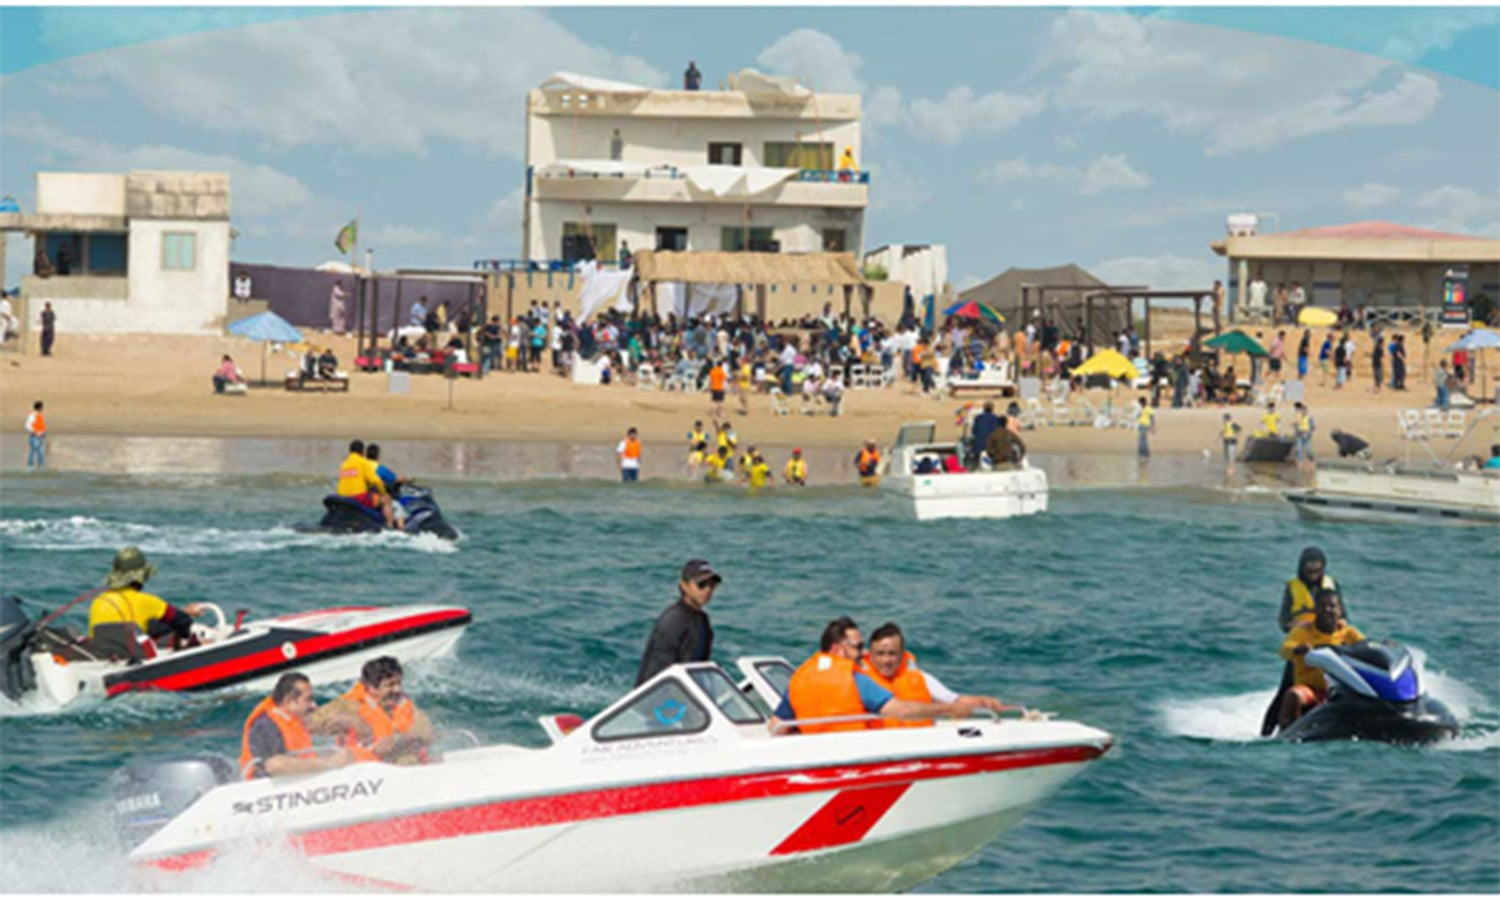 A watersports event at the popular Hawksbay Beach. It is one of Karachi's most popular resorts, even though it has begun to be encroached upon by a rapidly growing housing scheme in the area.